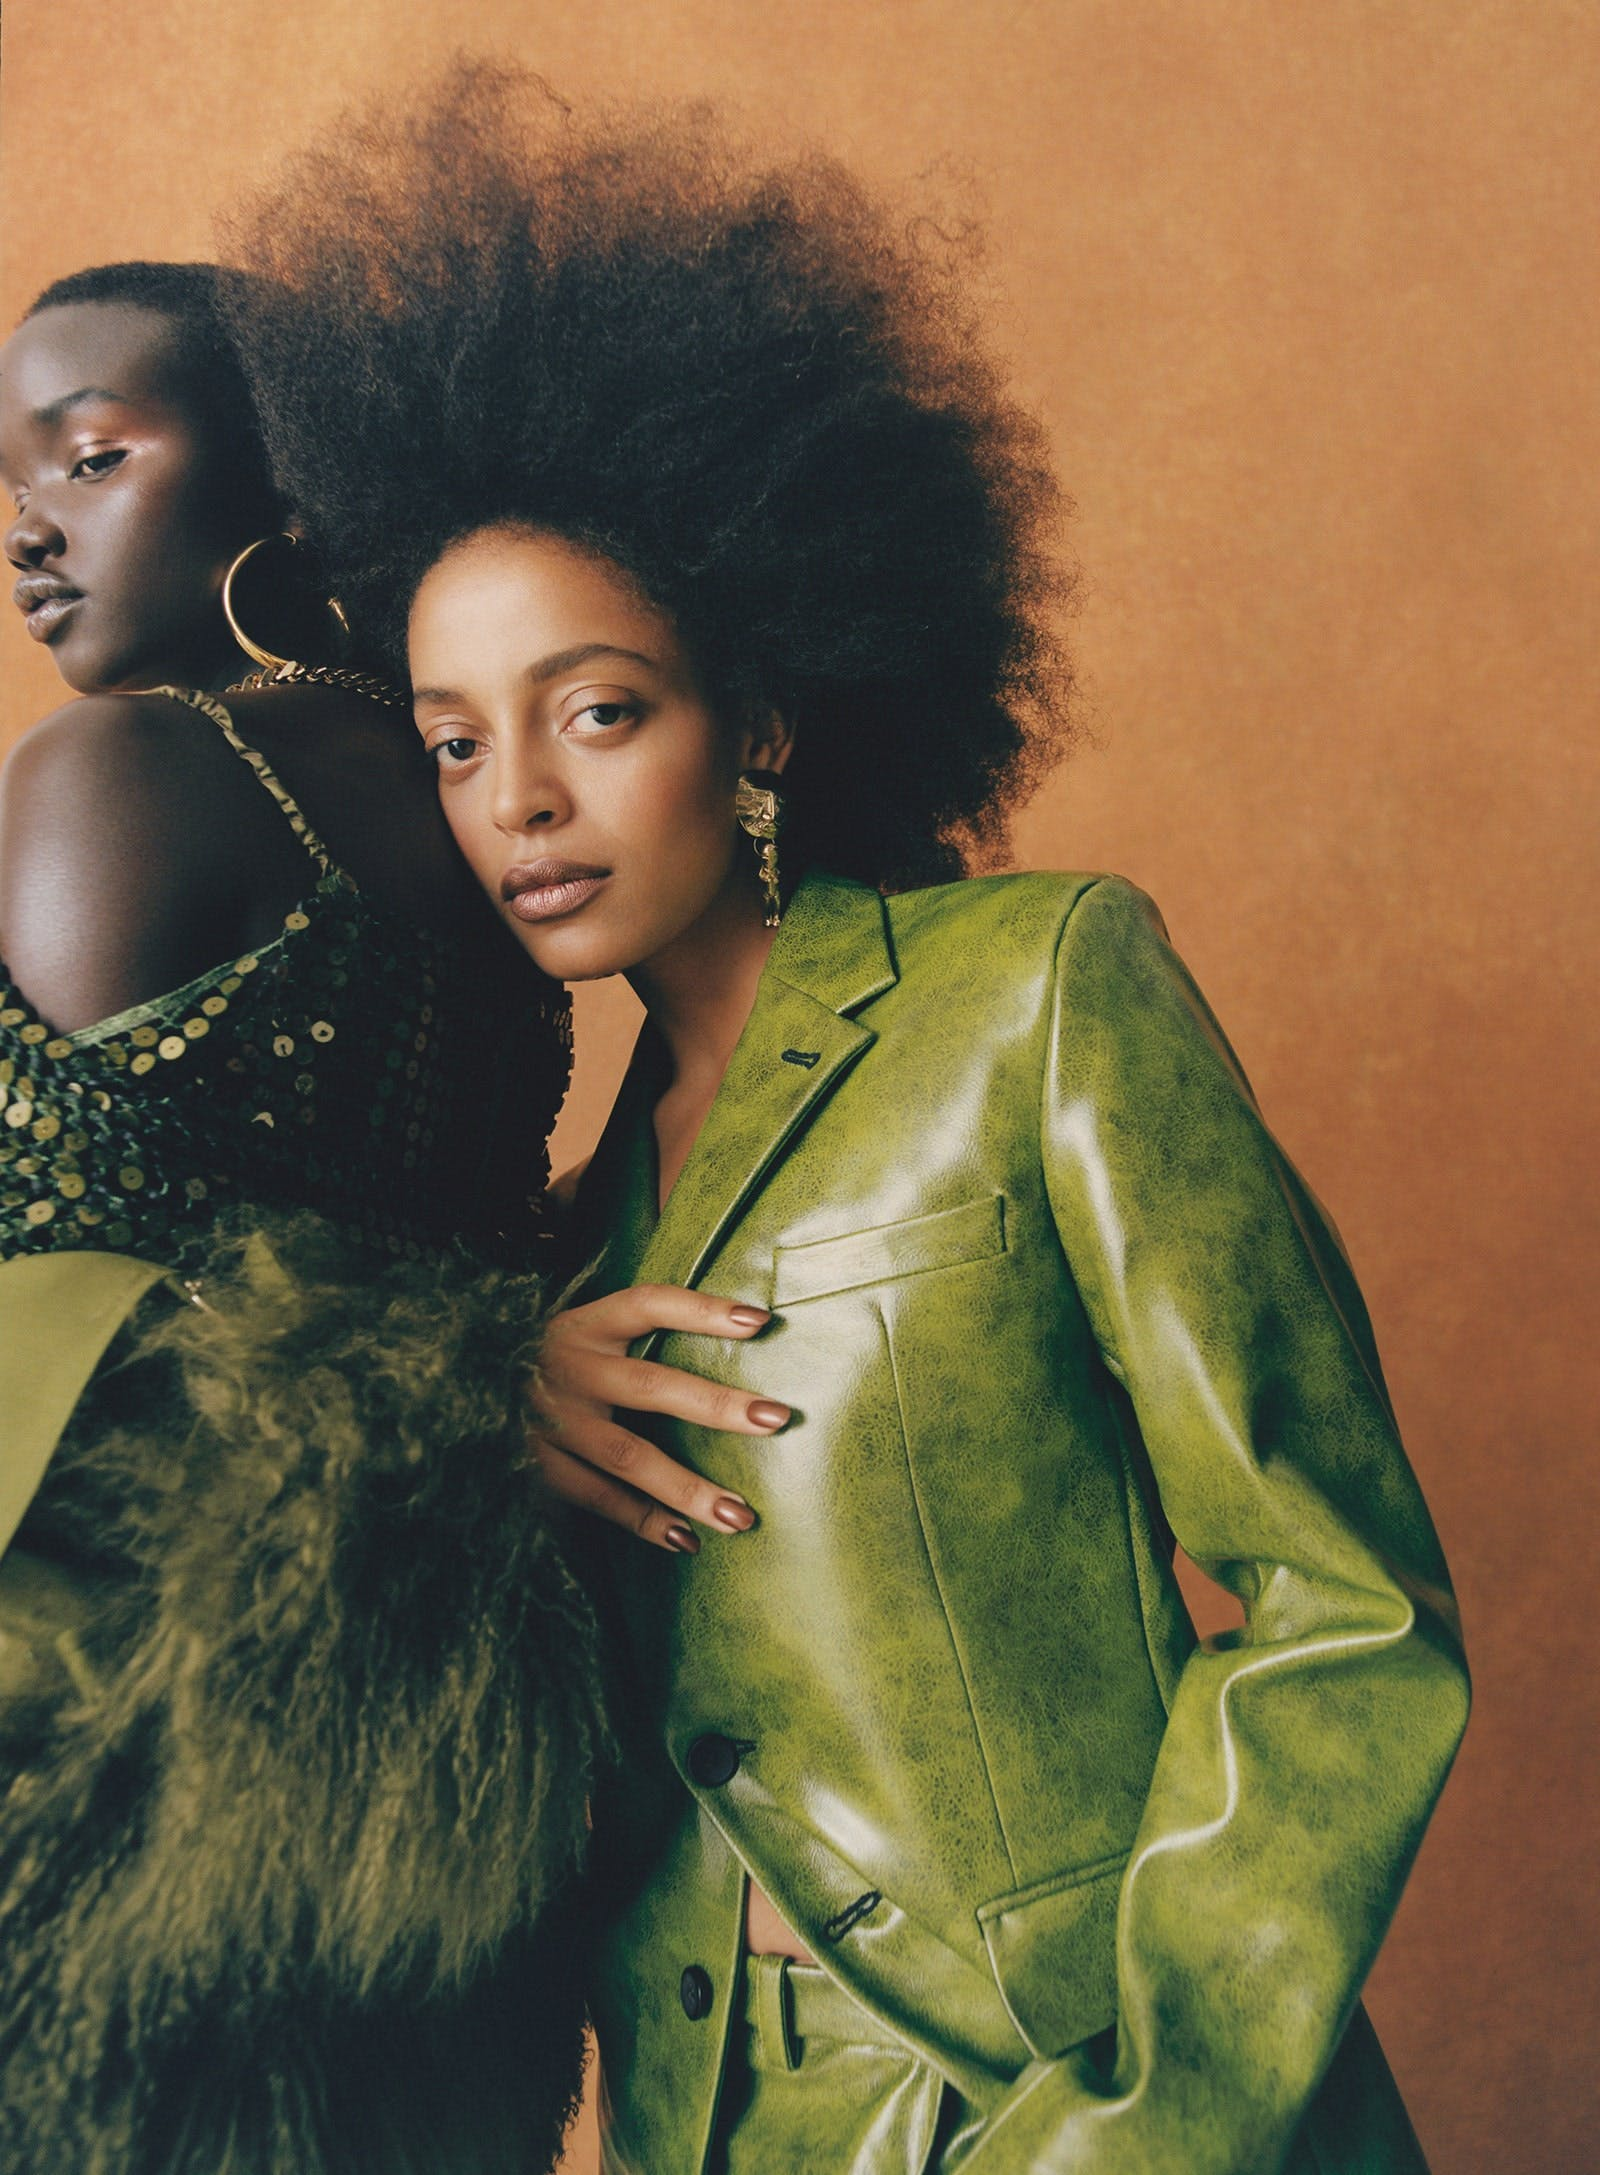 NIGERIAN-BRITISH DESIGNER TOKYO JAMES BELIEVES CLOTHING CAN HELP US FIND COMMONALITY